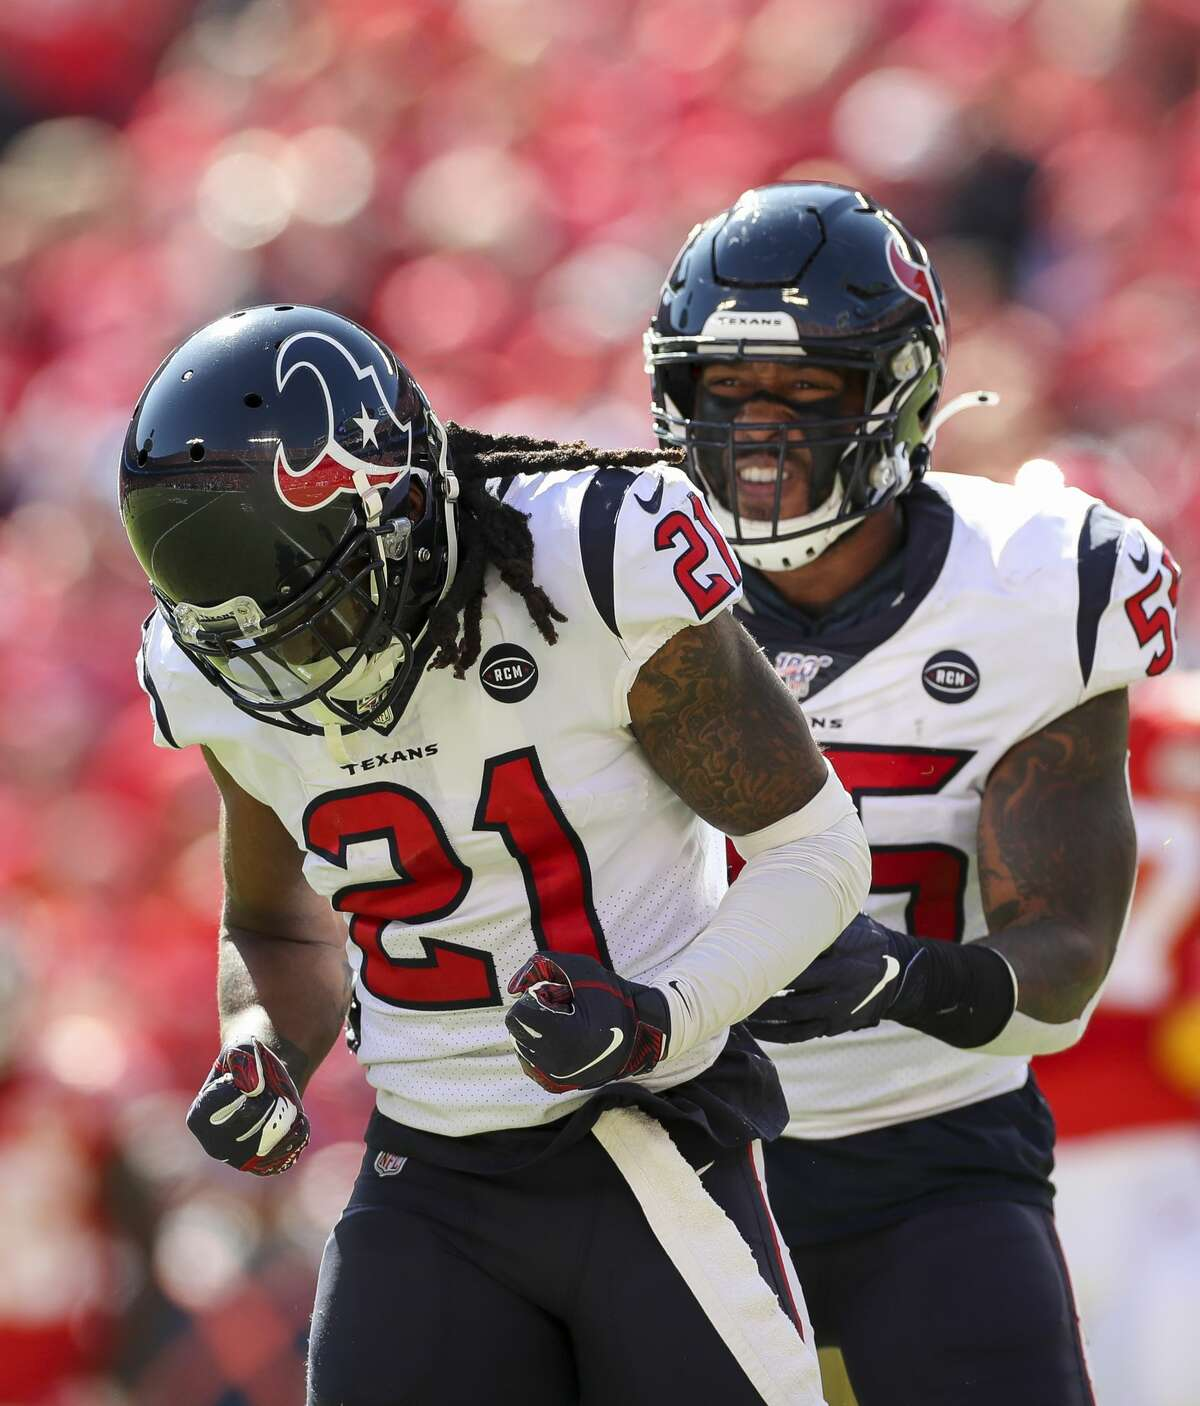 Houston Texans cornerback Bradley Roby (21) reacts after nearly intercepting a pass by Kansas City Chiefs quarterback Patrick Mahomes during the second quarter of an NFL game at Arrowhead Stadium Sunday, Oct. 13, 2019, in Kansas City, Mo. The Texas won 31-24.